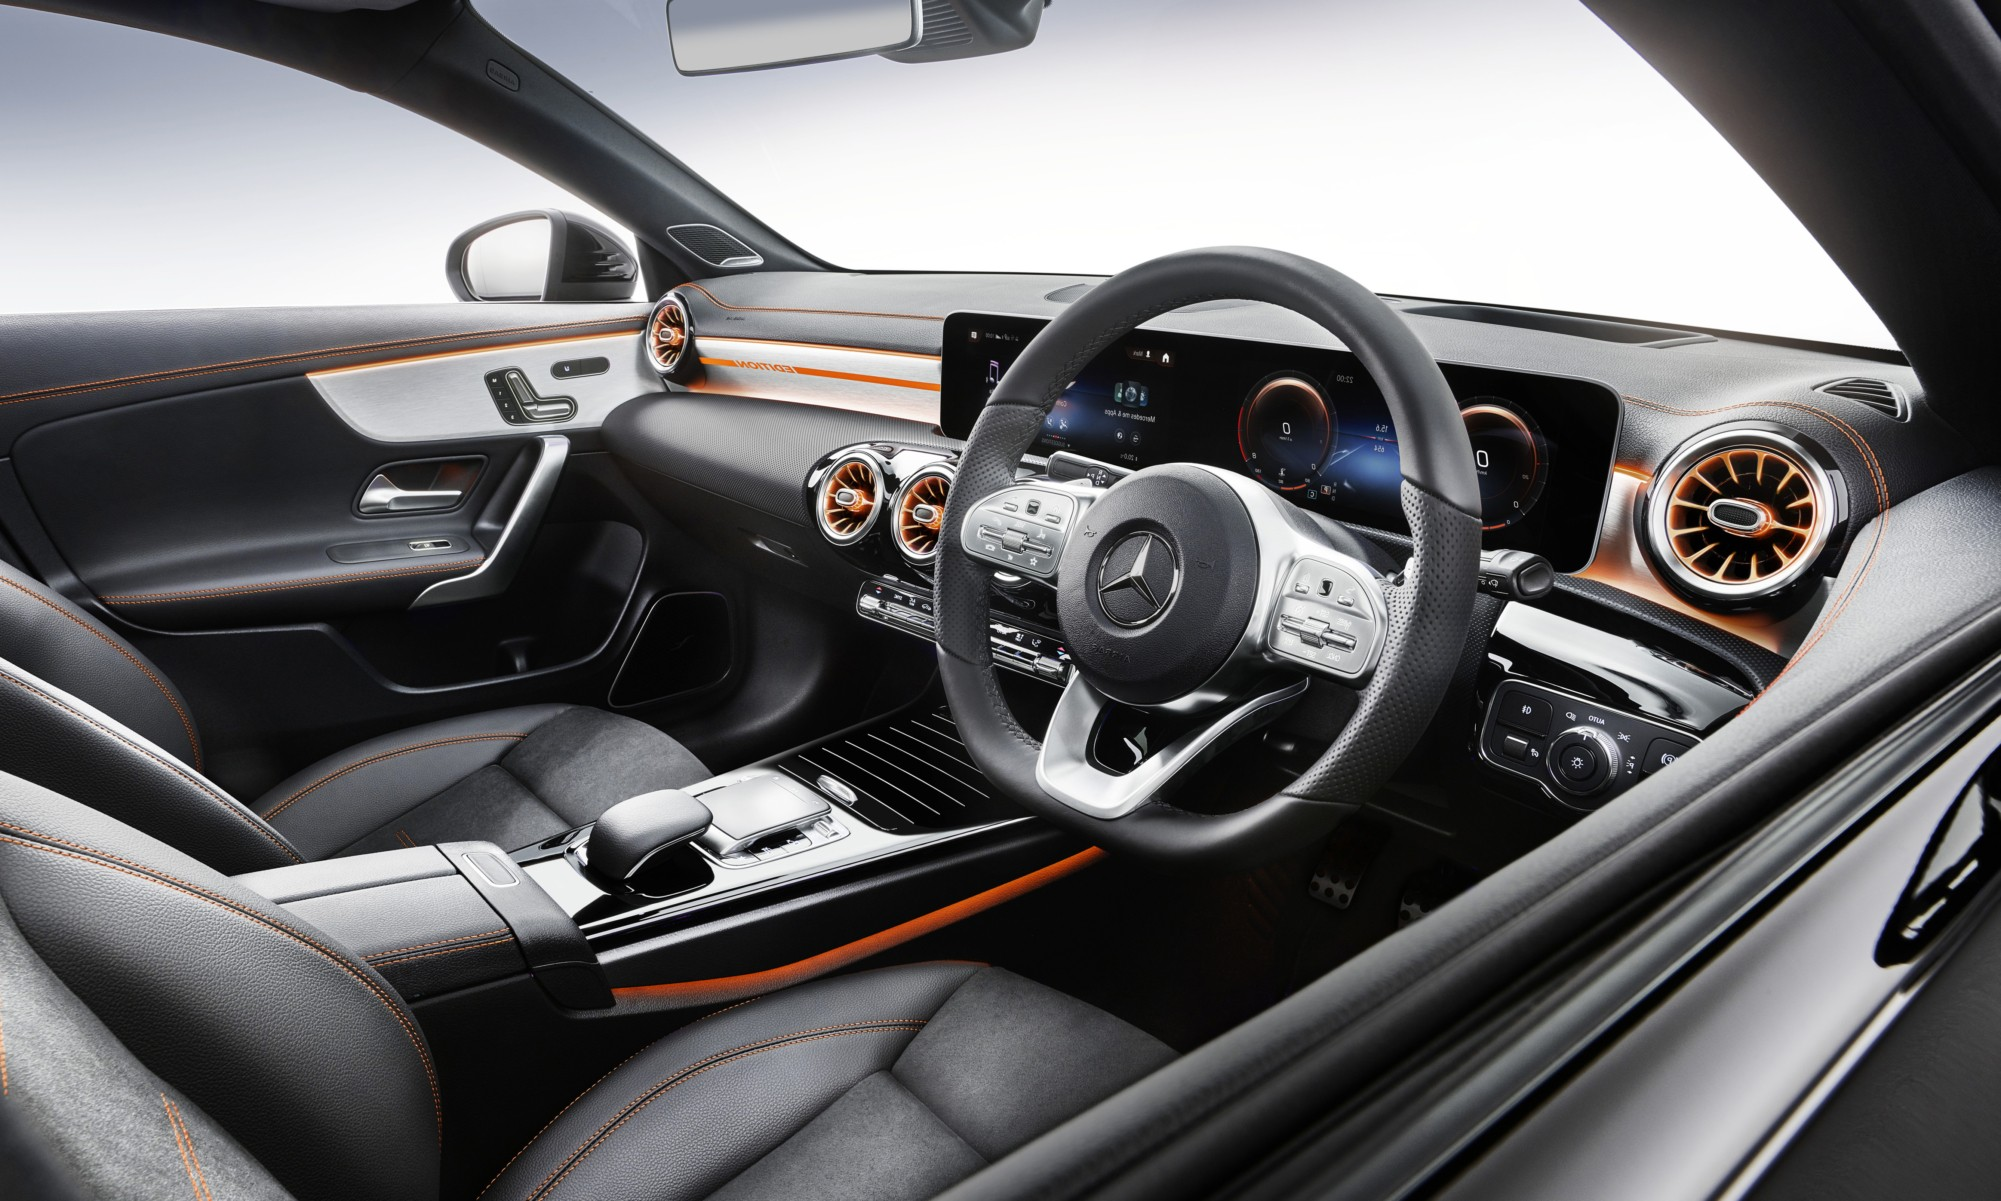 Mercedes-Benz CLA200 interior